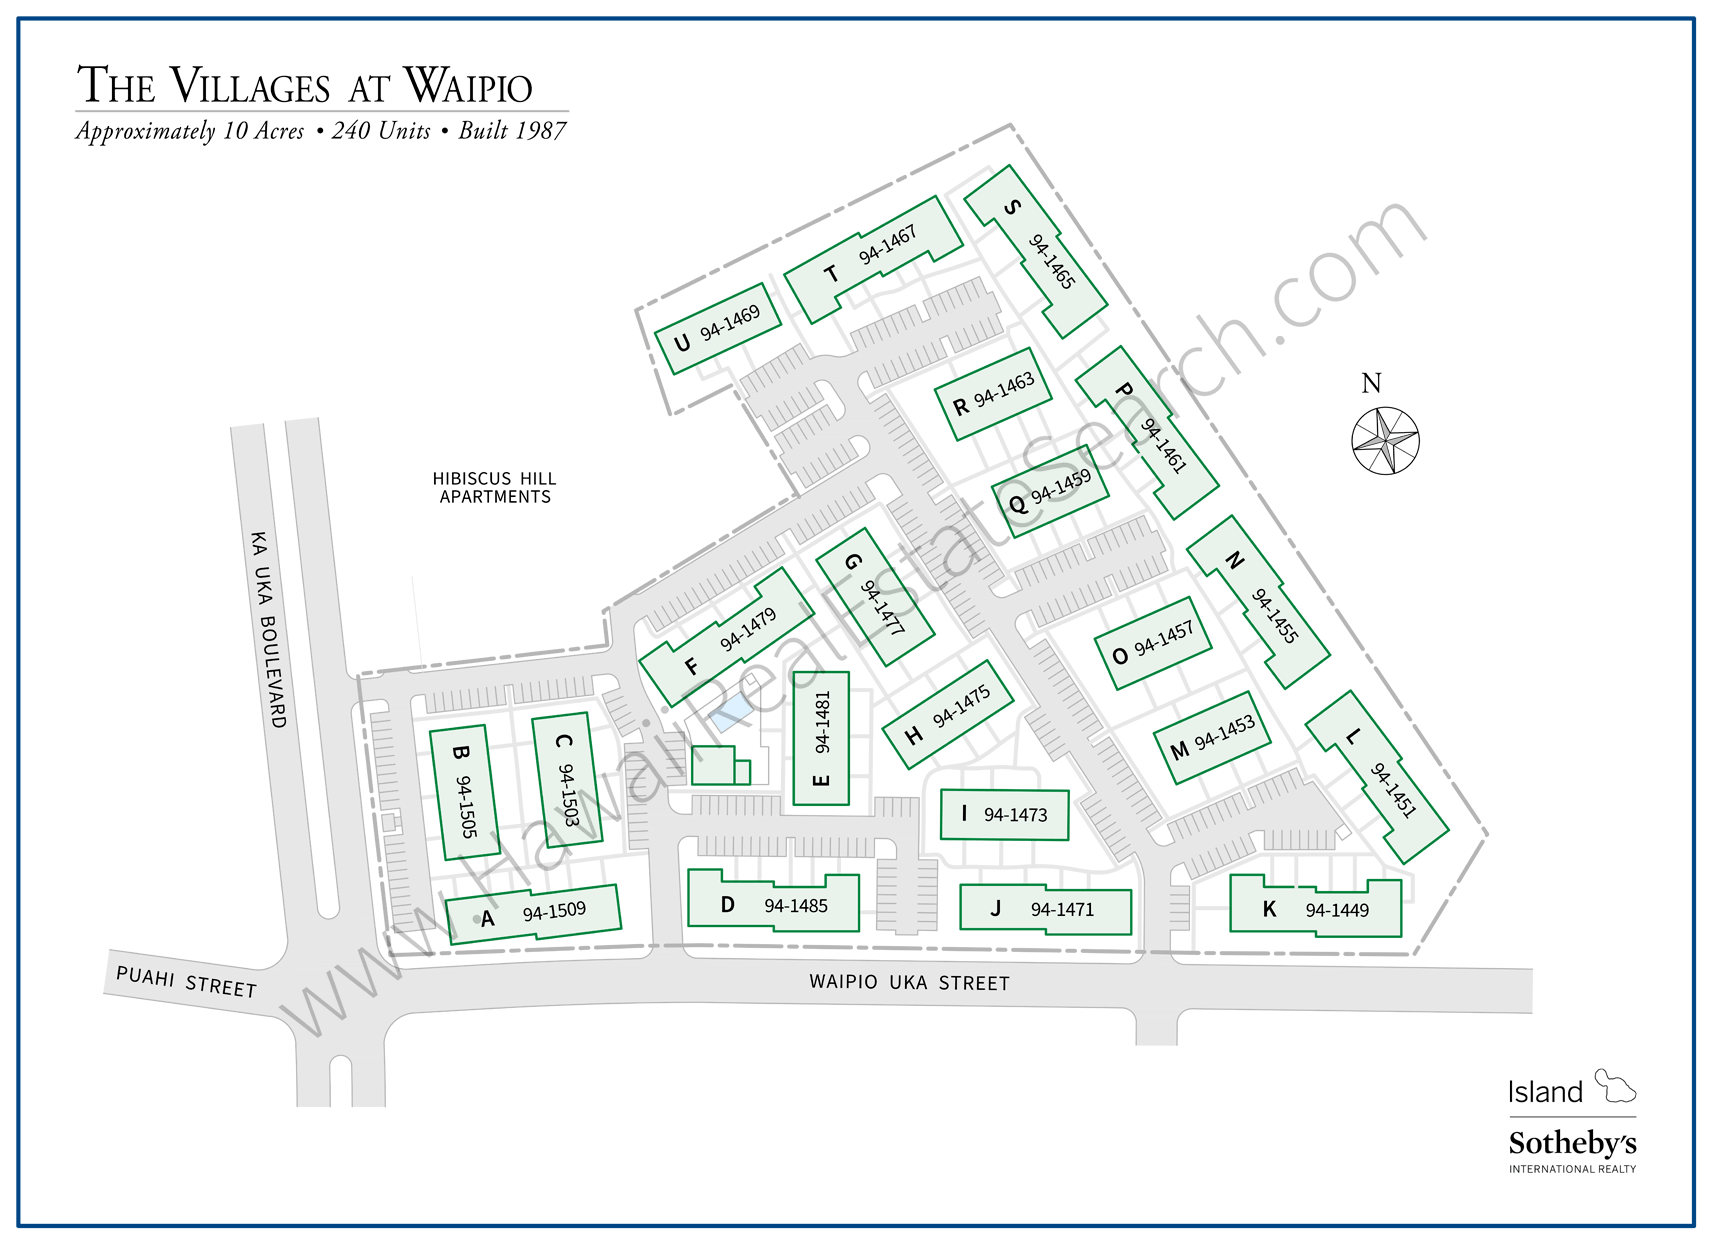 Villages at Waipio Property Map